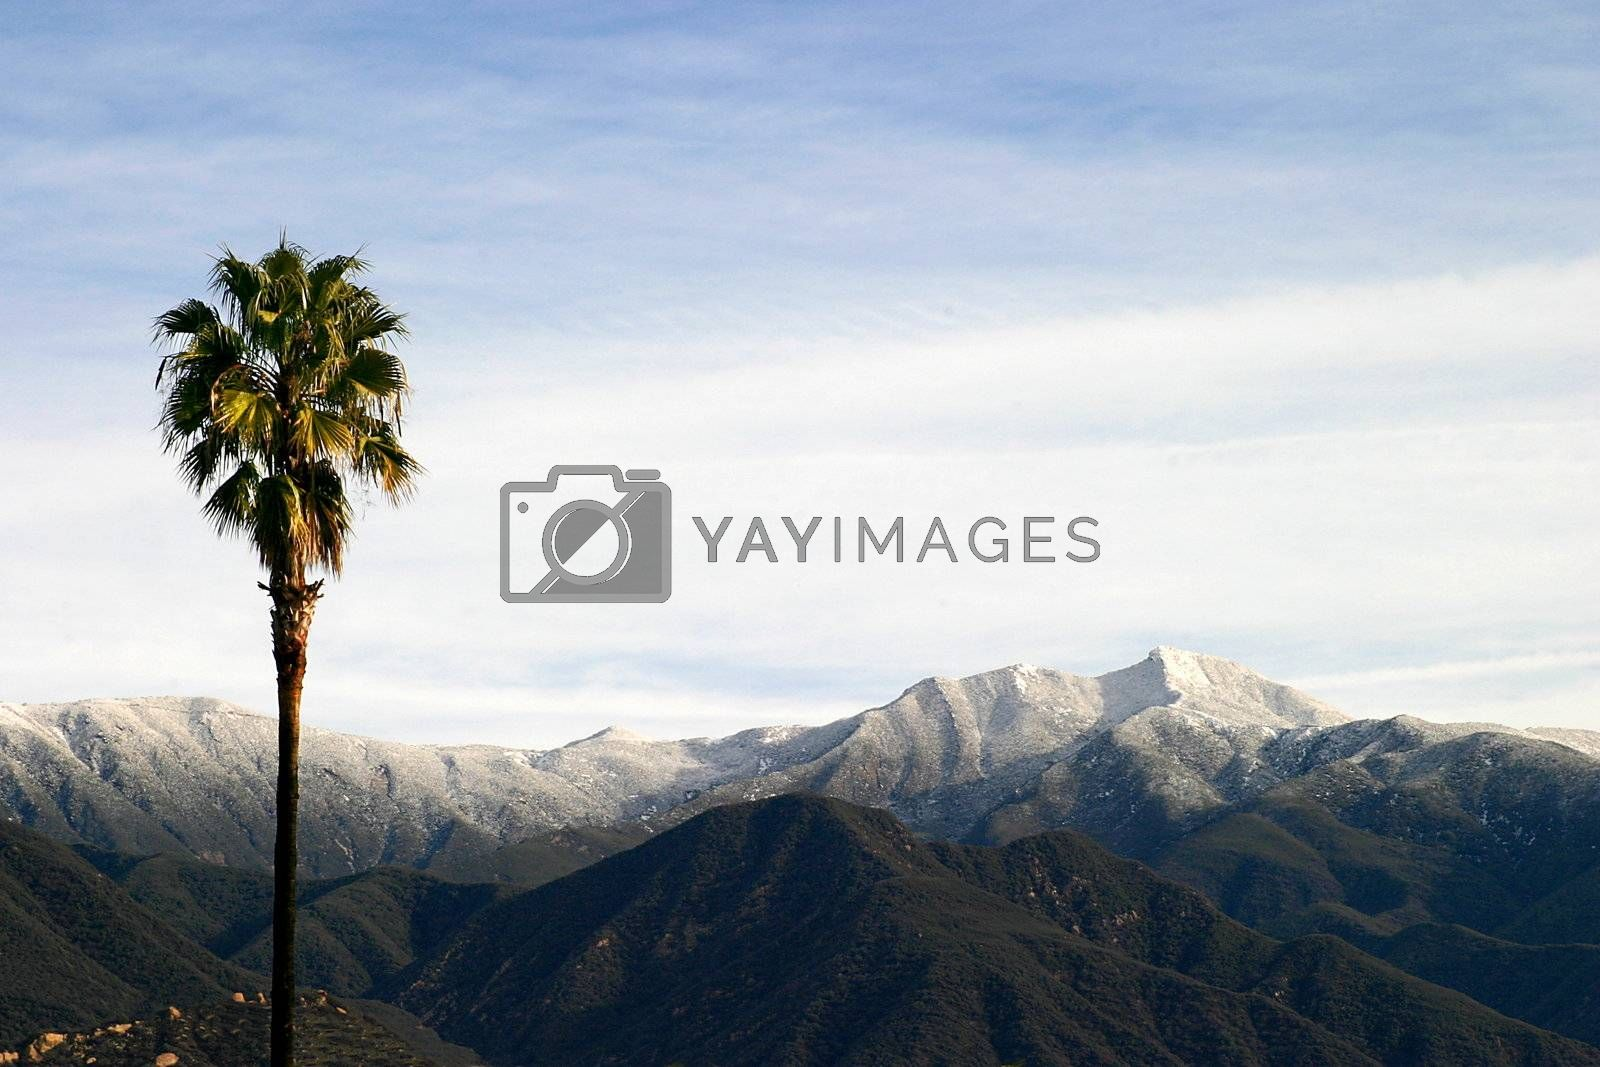 Southern California Snow (4315) by hlehnerer